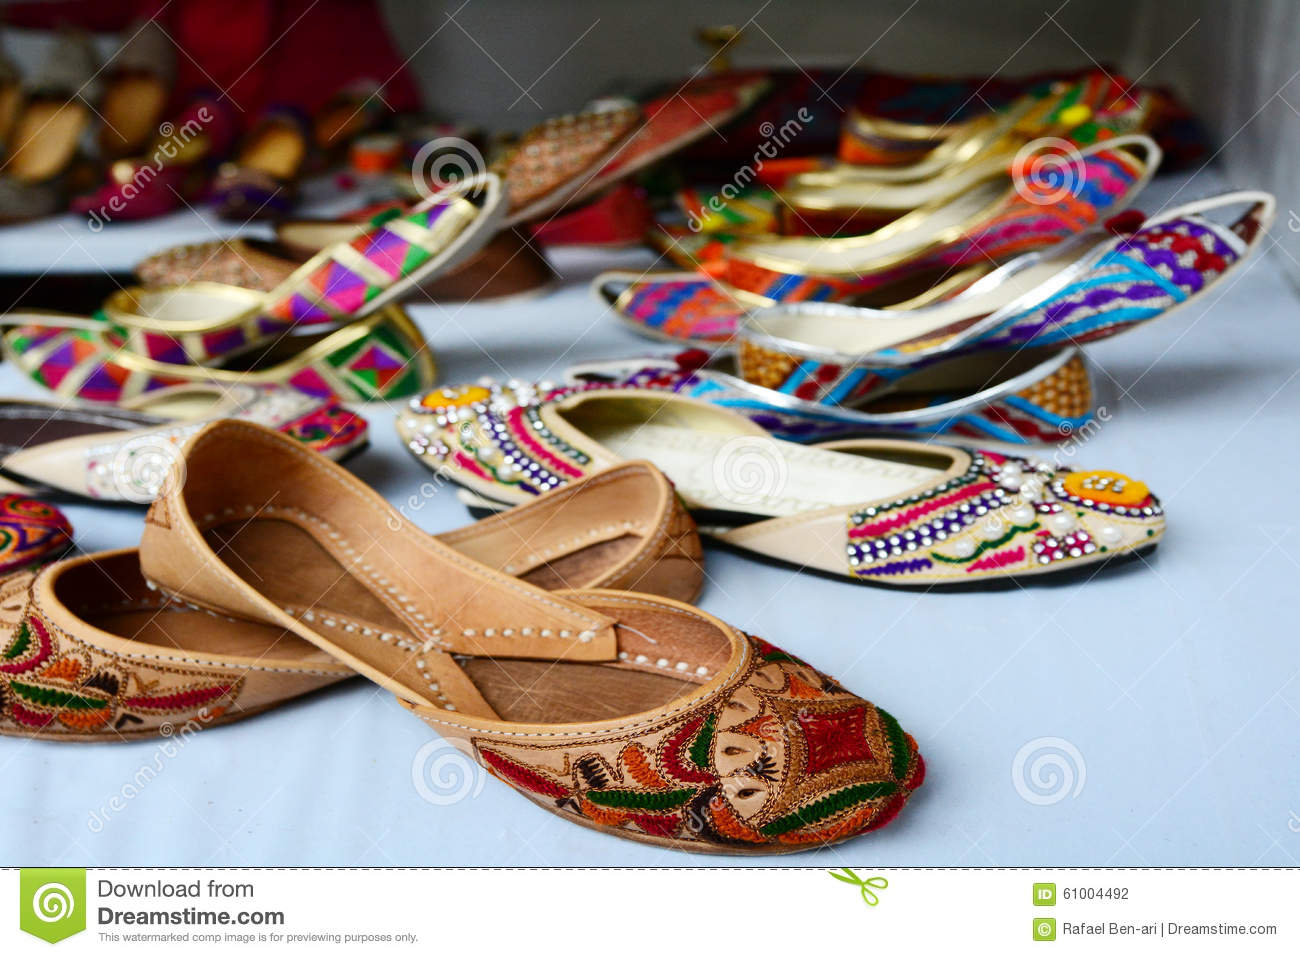 5f565a3ad5de Colorful Indian Ethnic Shoes Stock Photo - Image of footwear